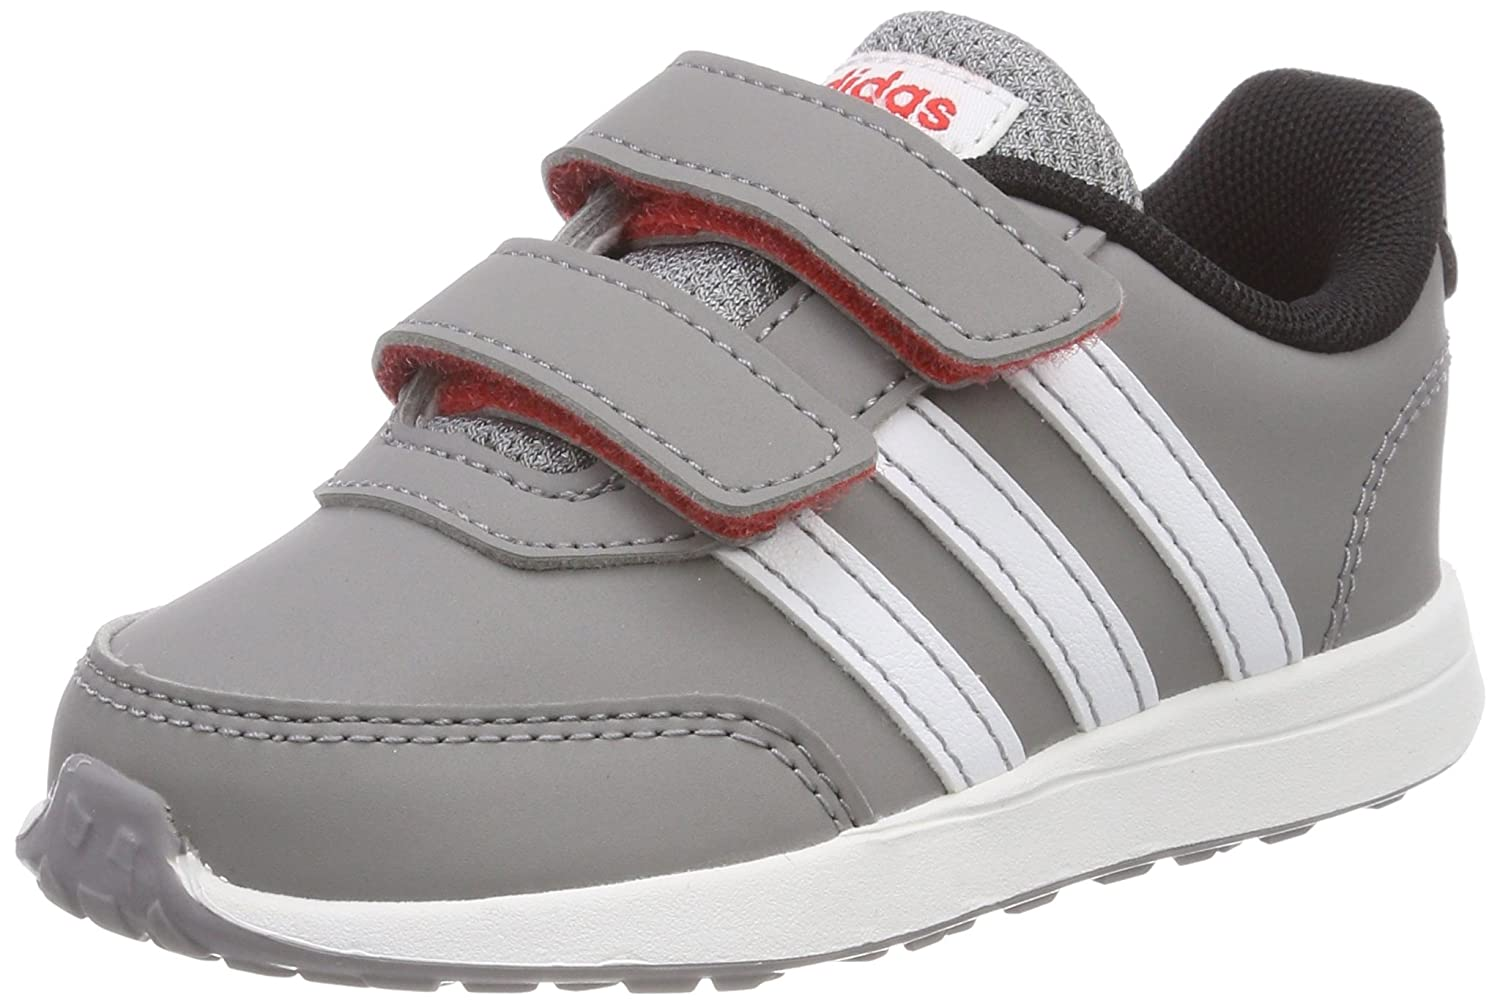 adidas Unisex Babies' Vs Switch 2.0 CMF Low-Top Sneakers